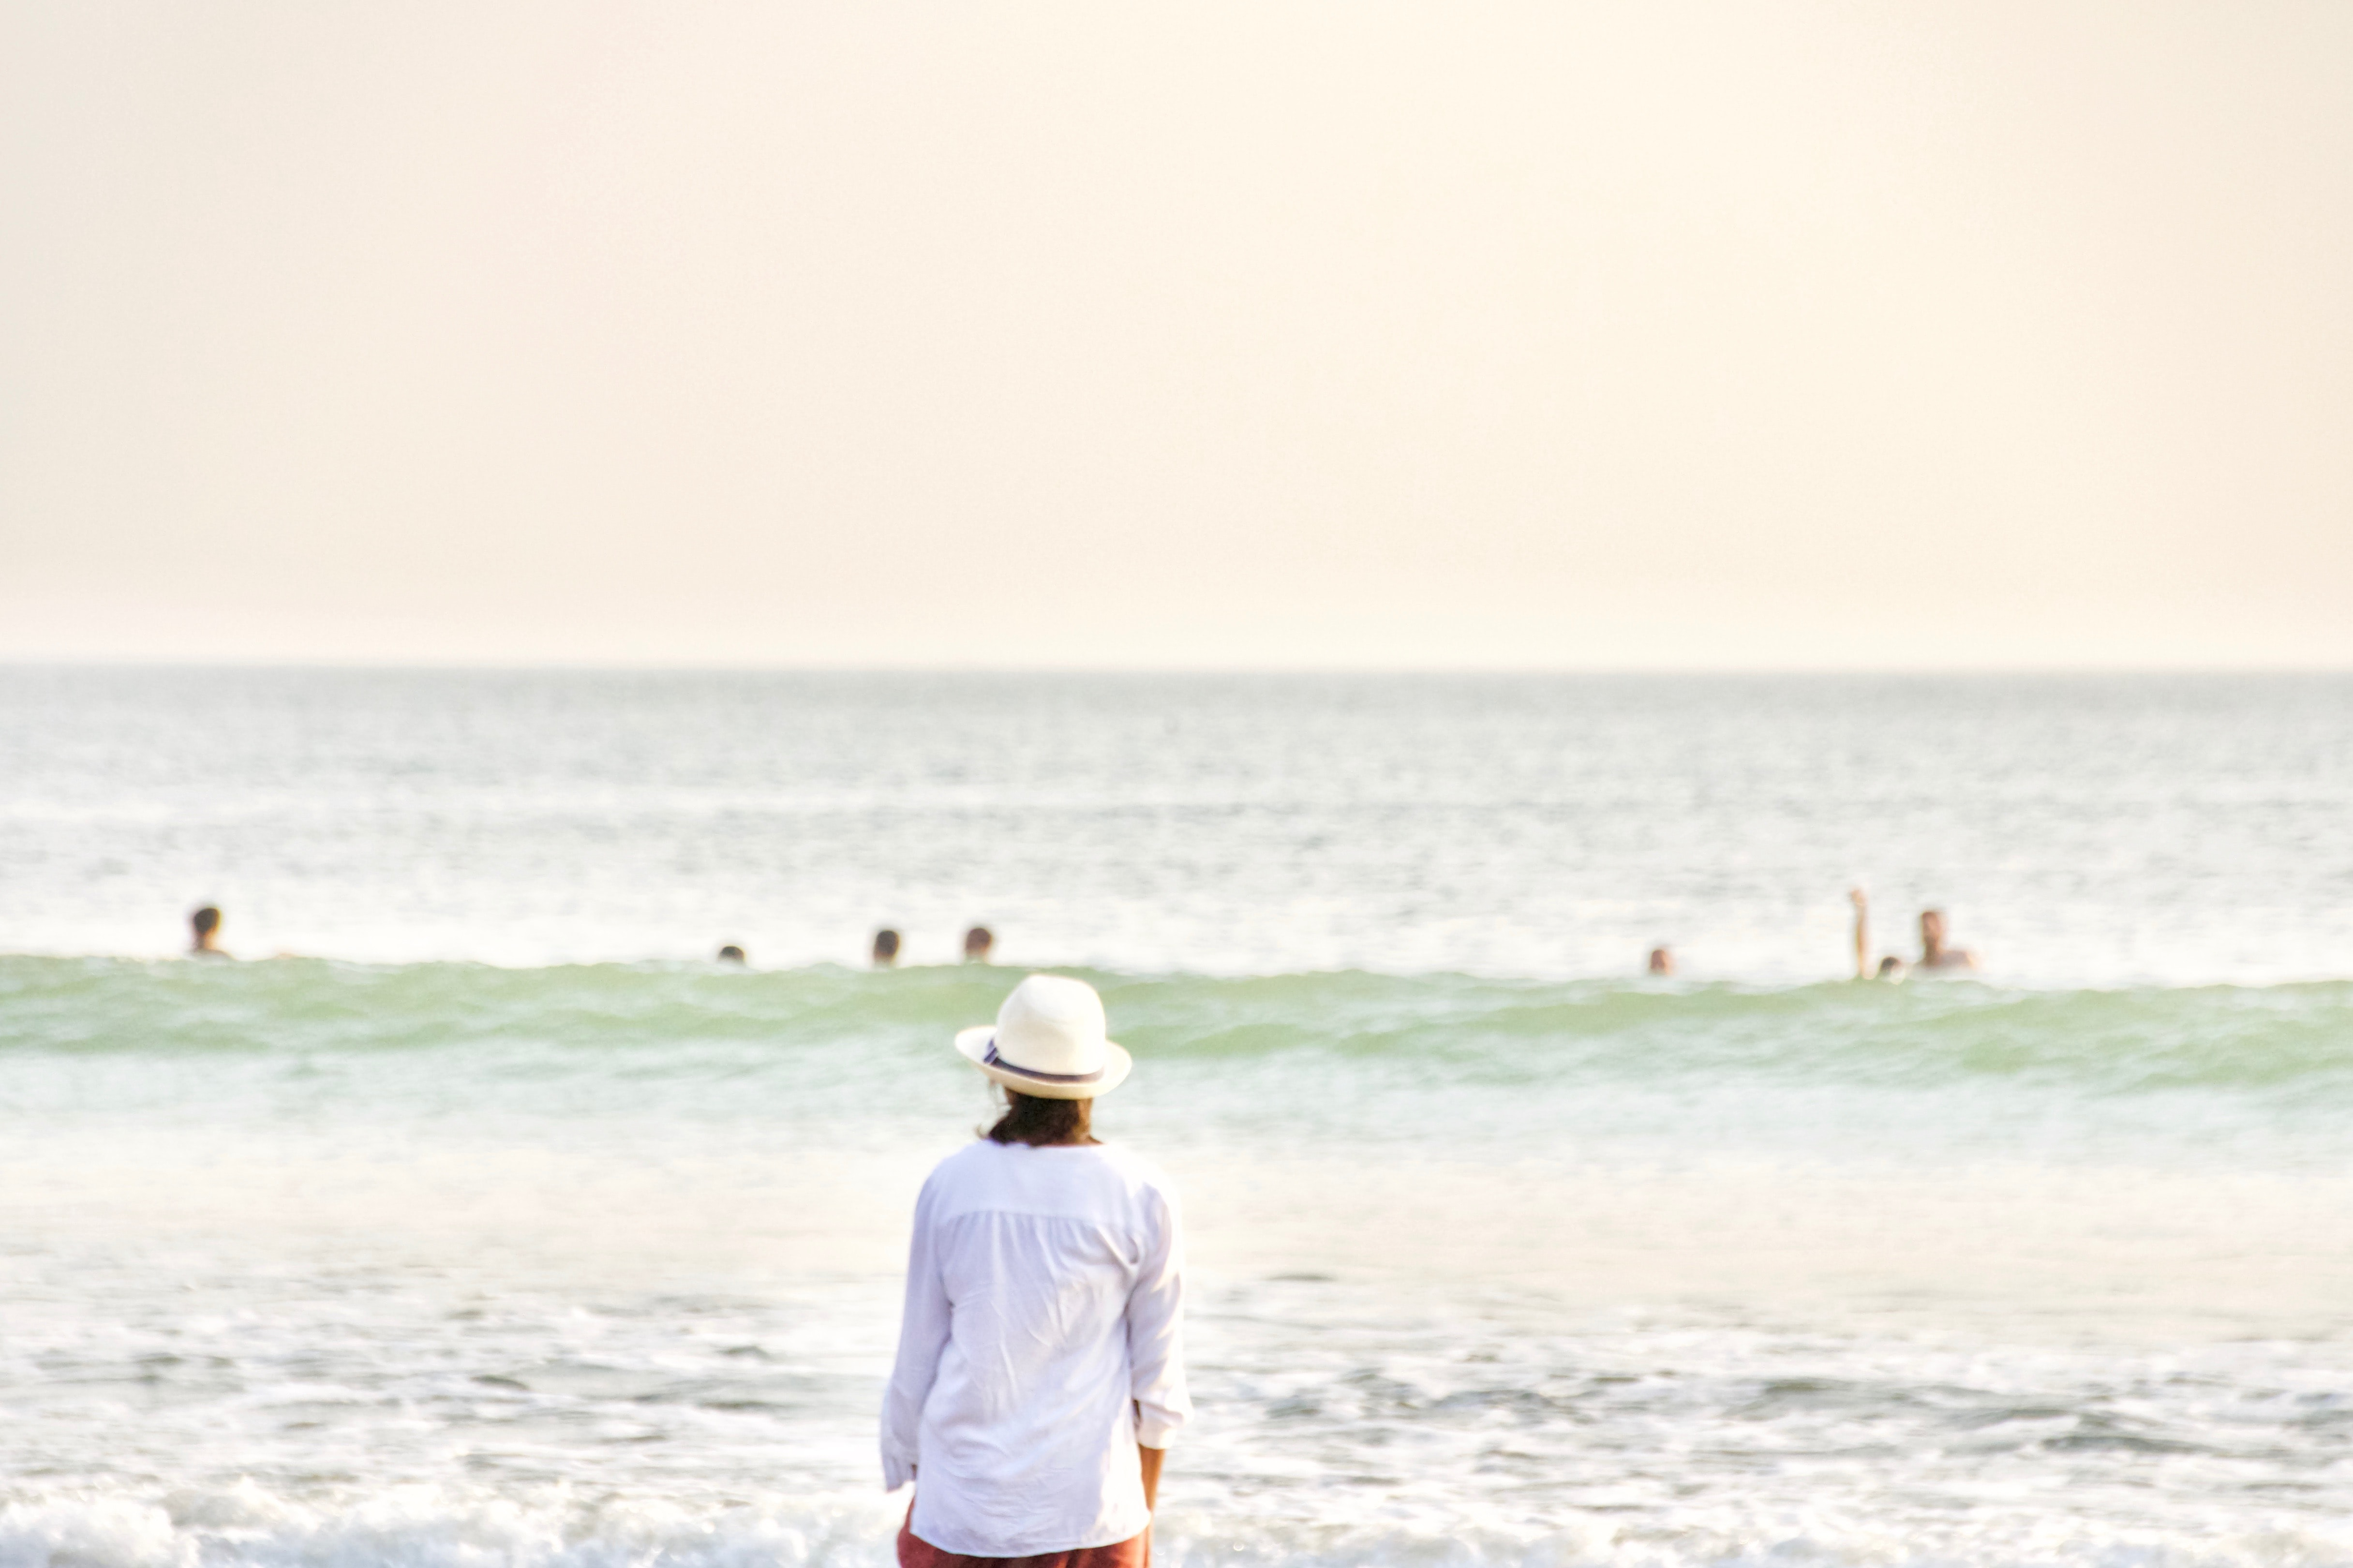 person with hat standing front of sea at daytime